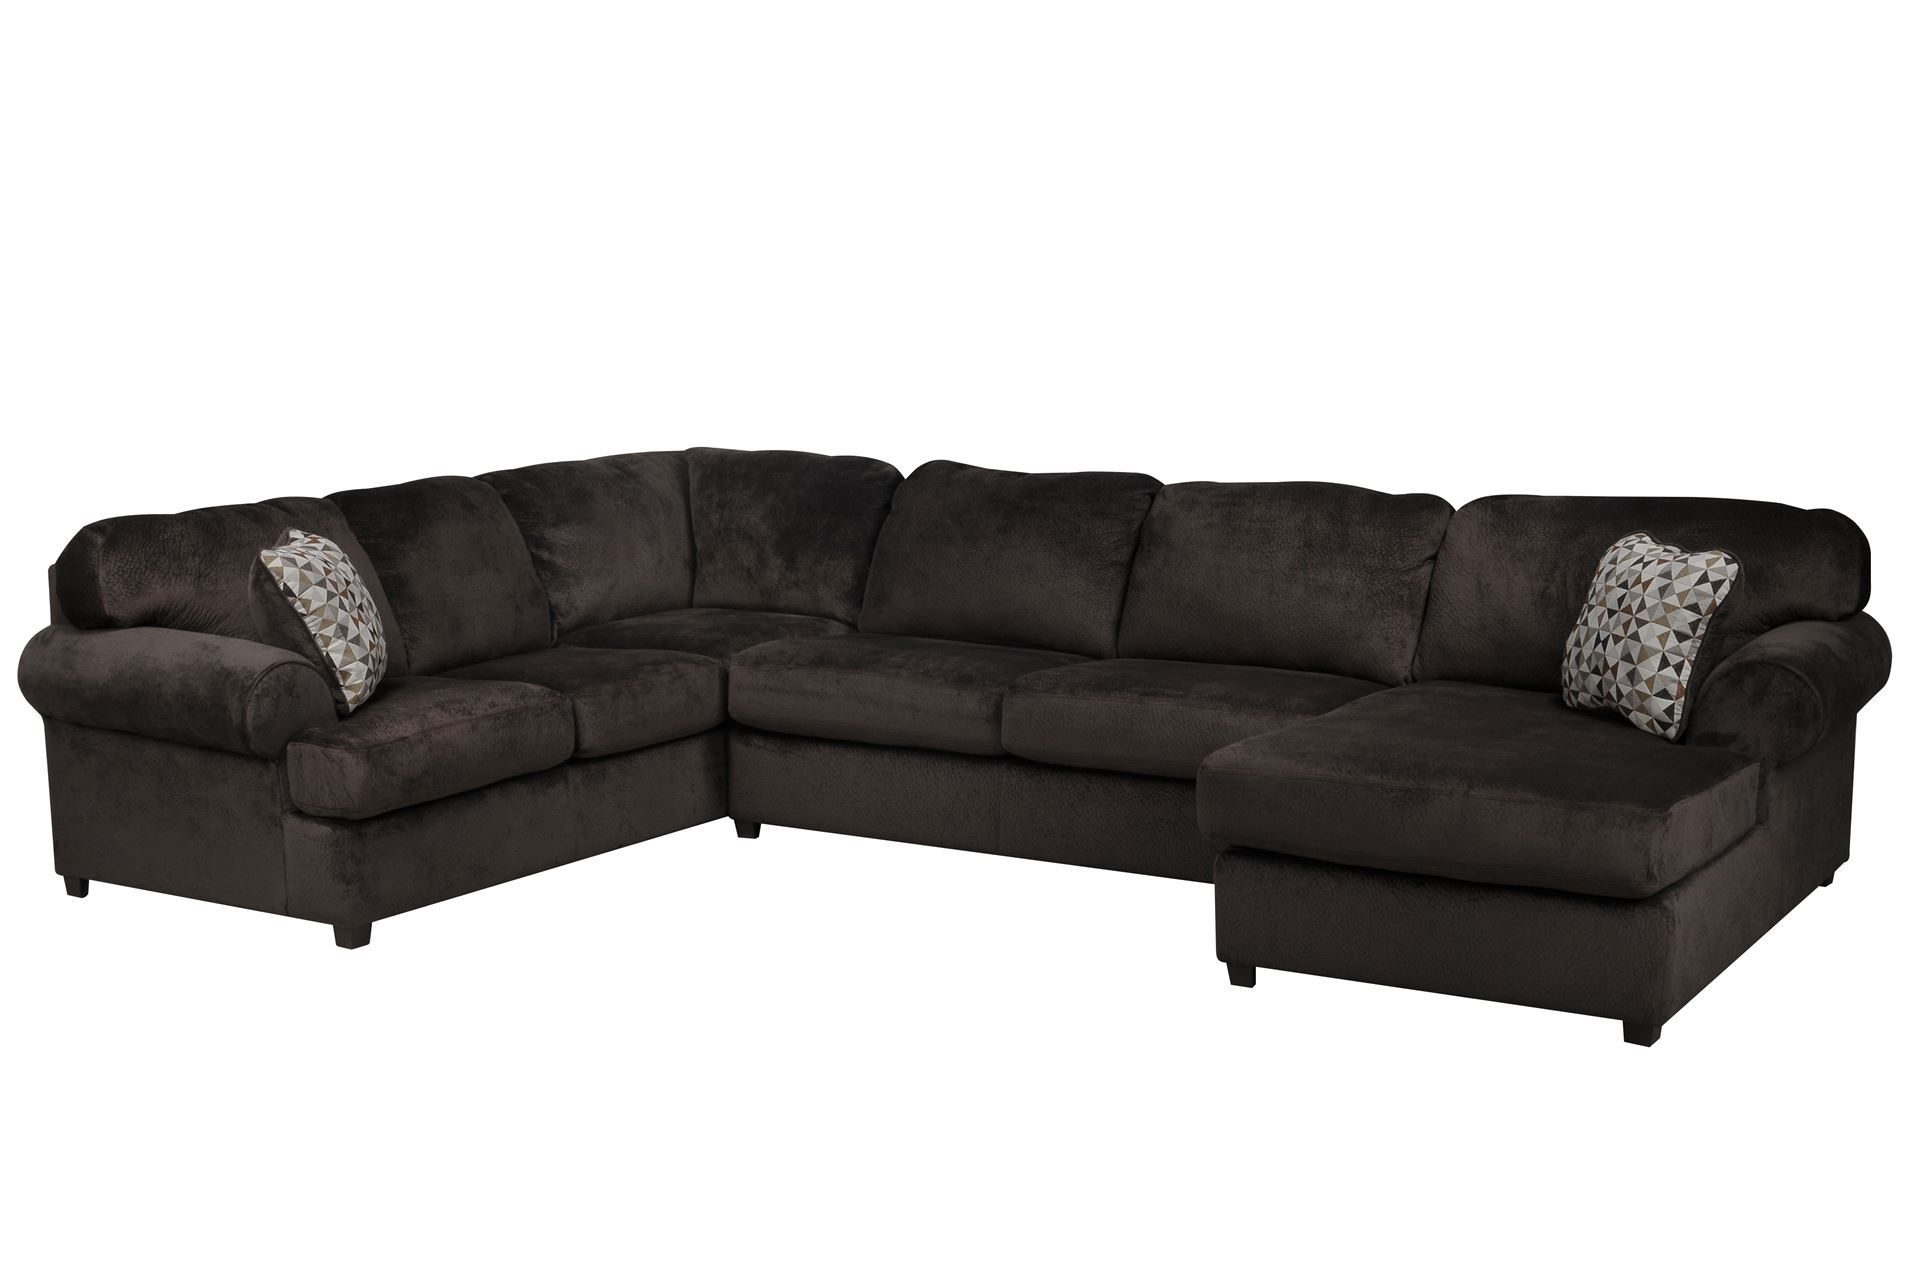 jessa place chocolate 3 piece sectional w raf chaise. Black Bedroom Furniture Sets. Home Design Ideas